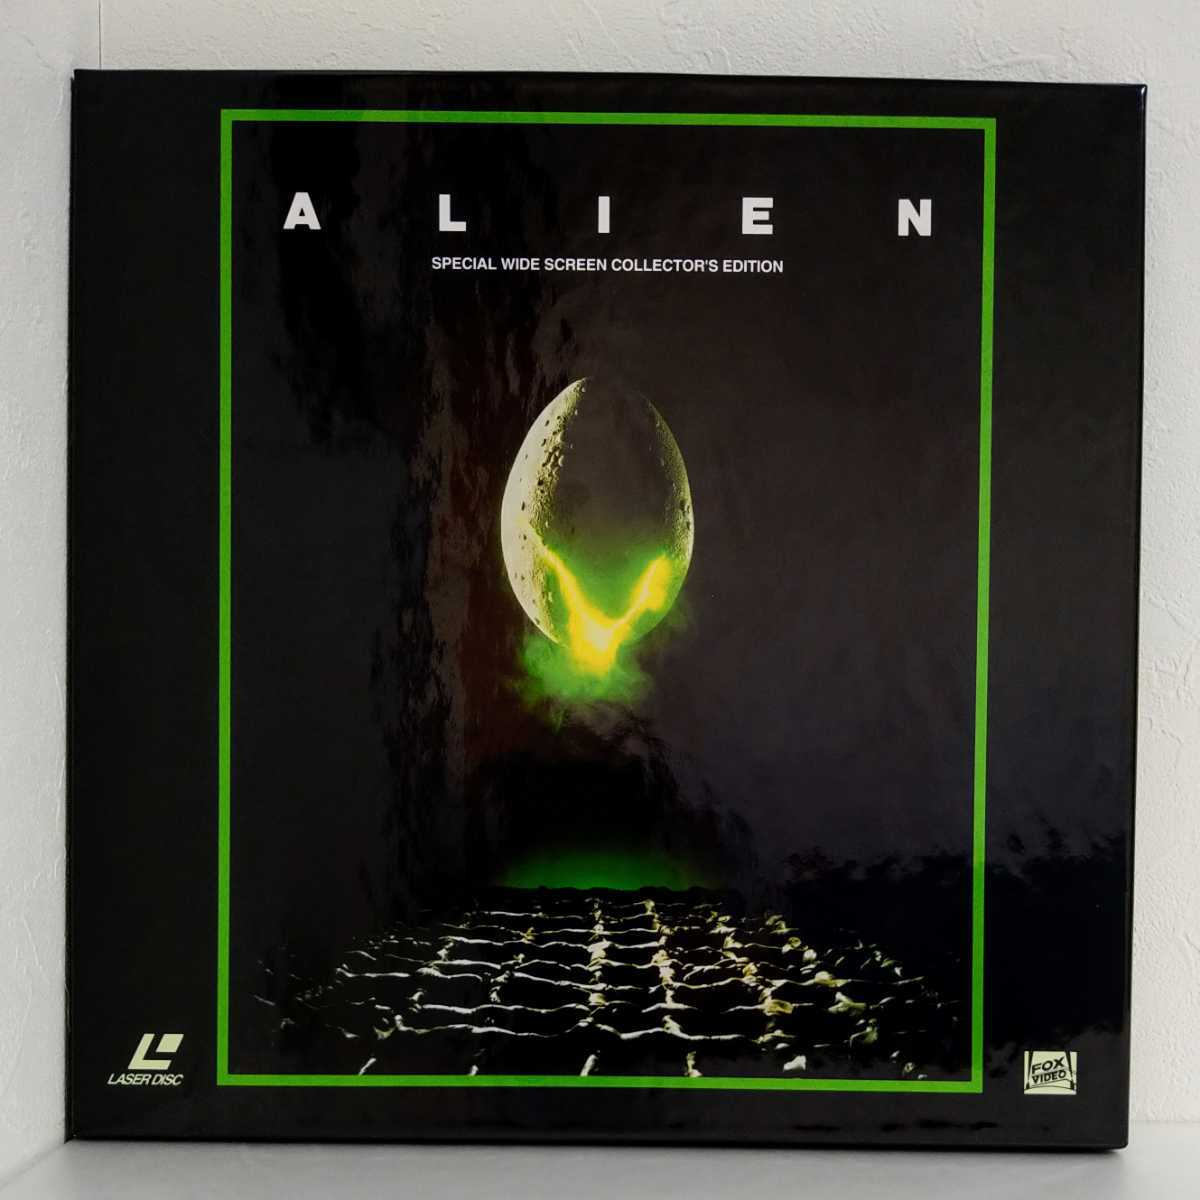 LD BOX 輸入盤 エイリアン 『ALIEN』 Special Wide screen Collector's Edition 3枚組 レーザーディスク_画像1